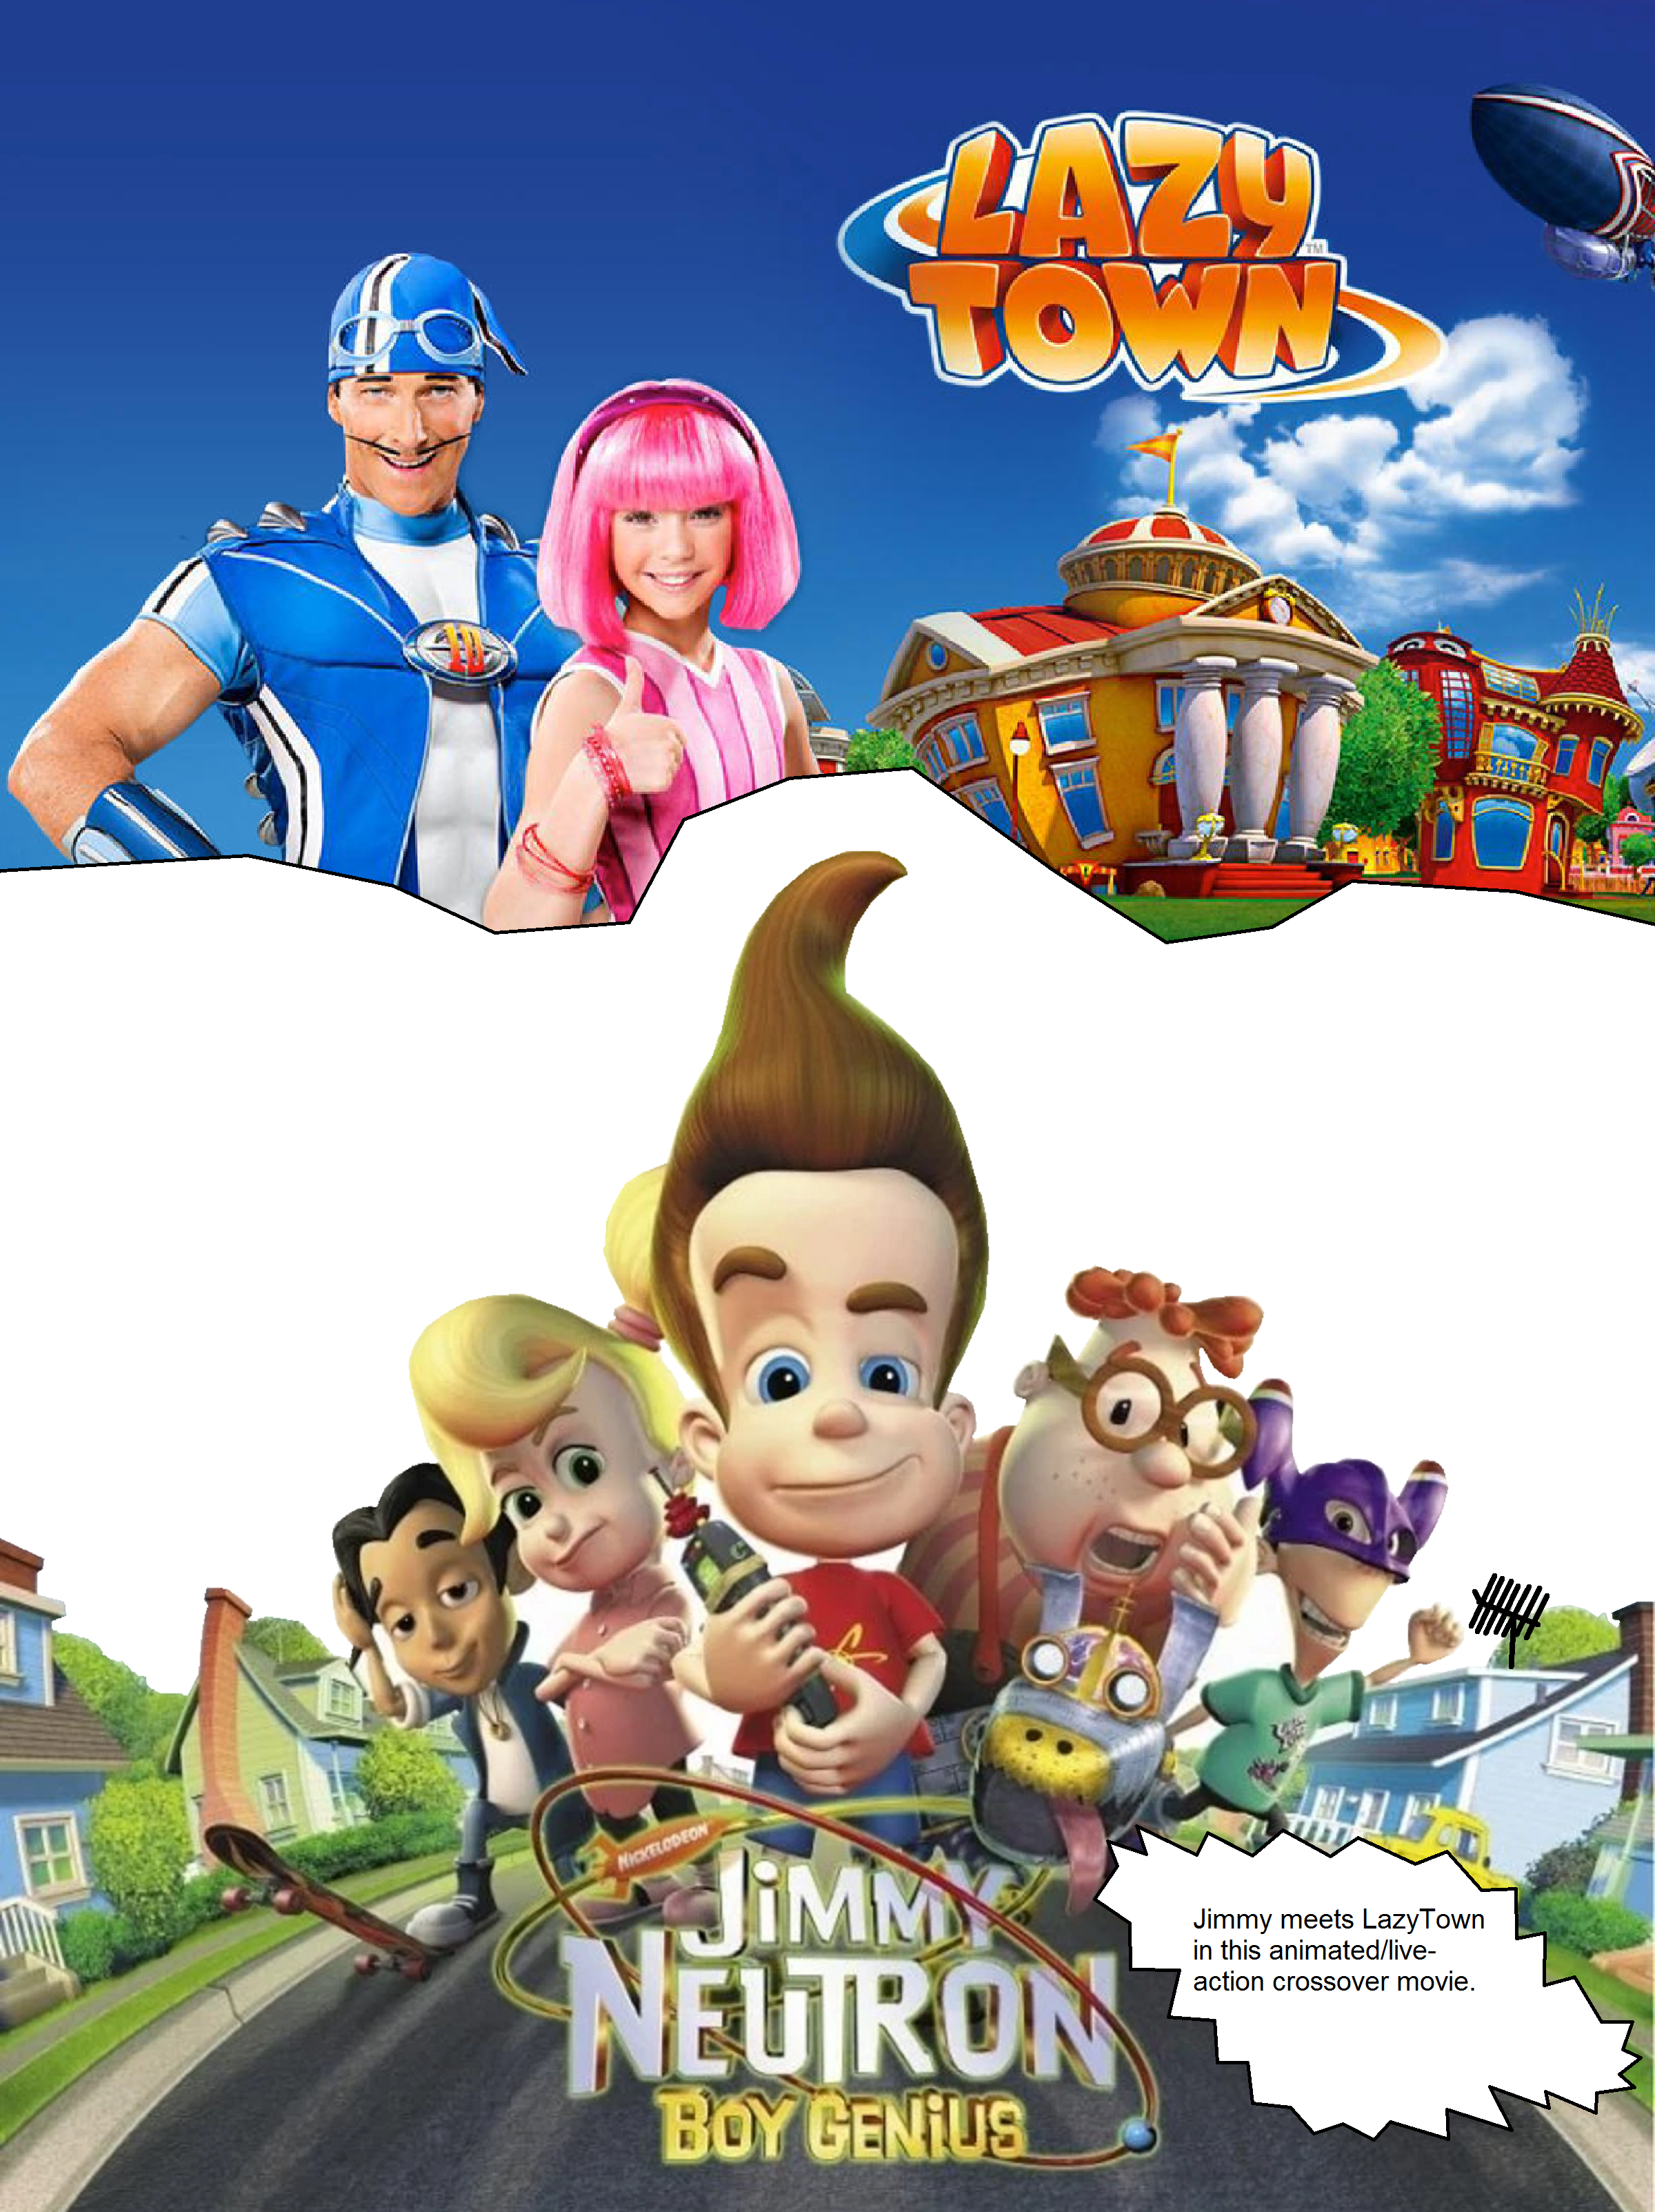 Jimmy Neutron in LazyTown